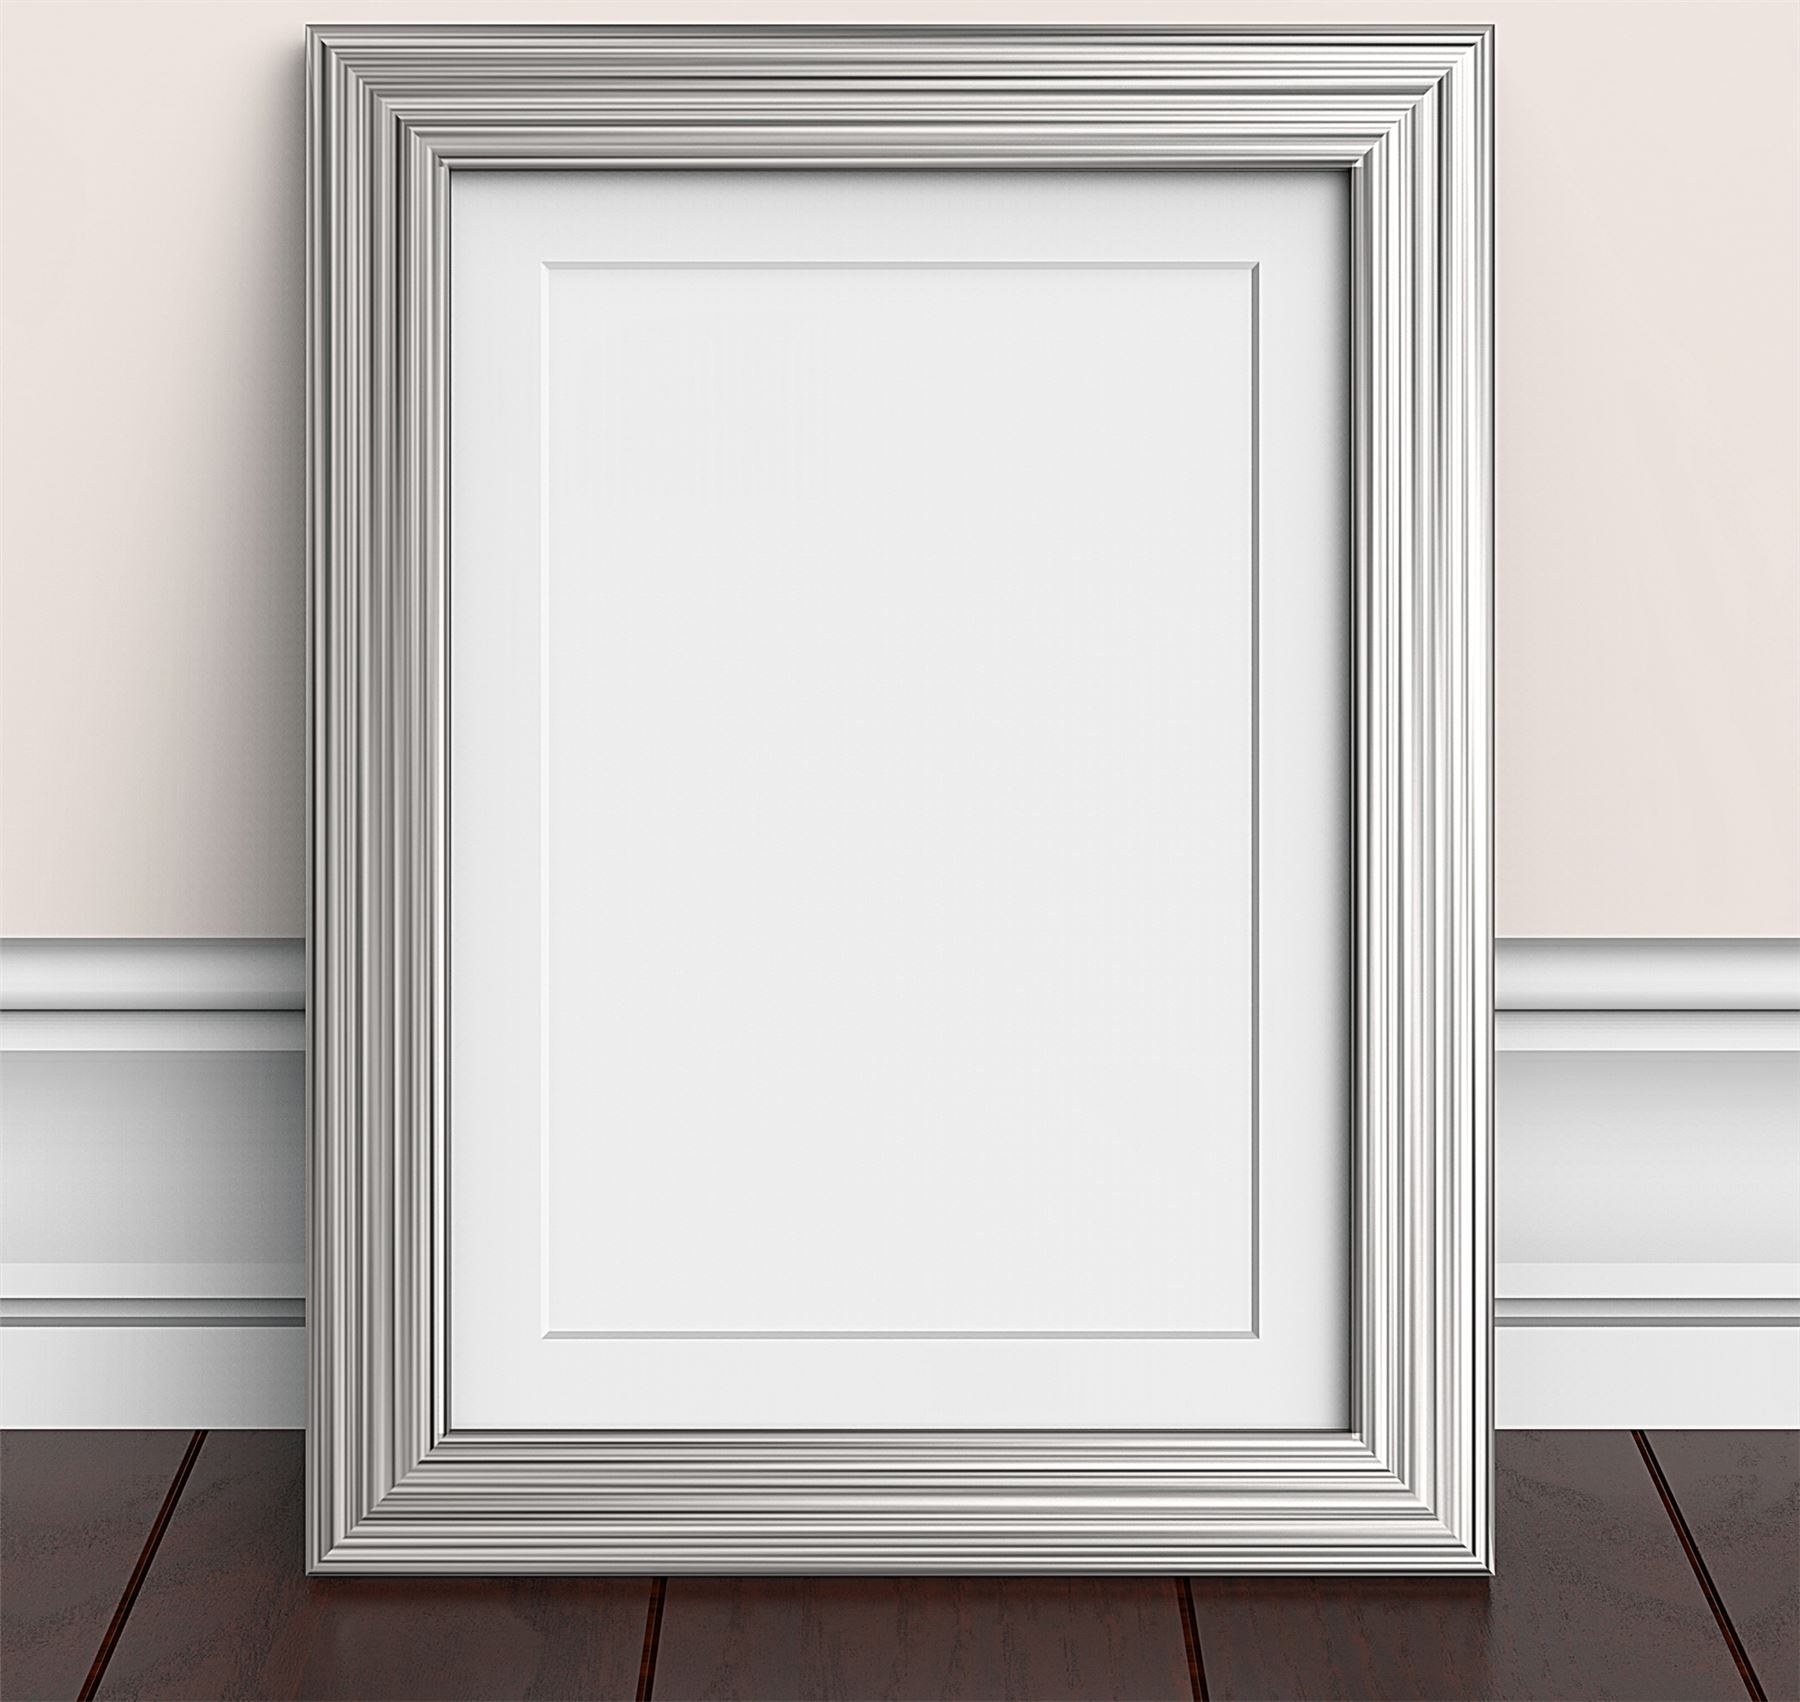 Pewter Pine Pink Beech Photo Picture Frames with Quality White ...